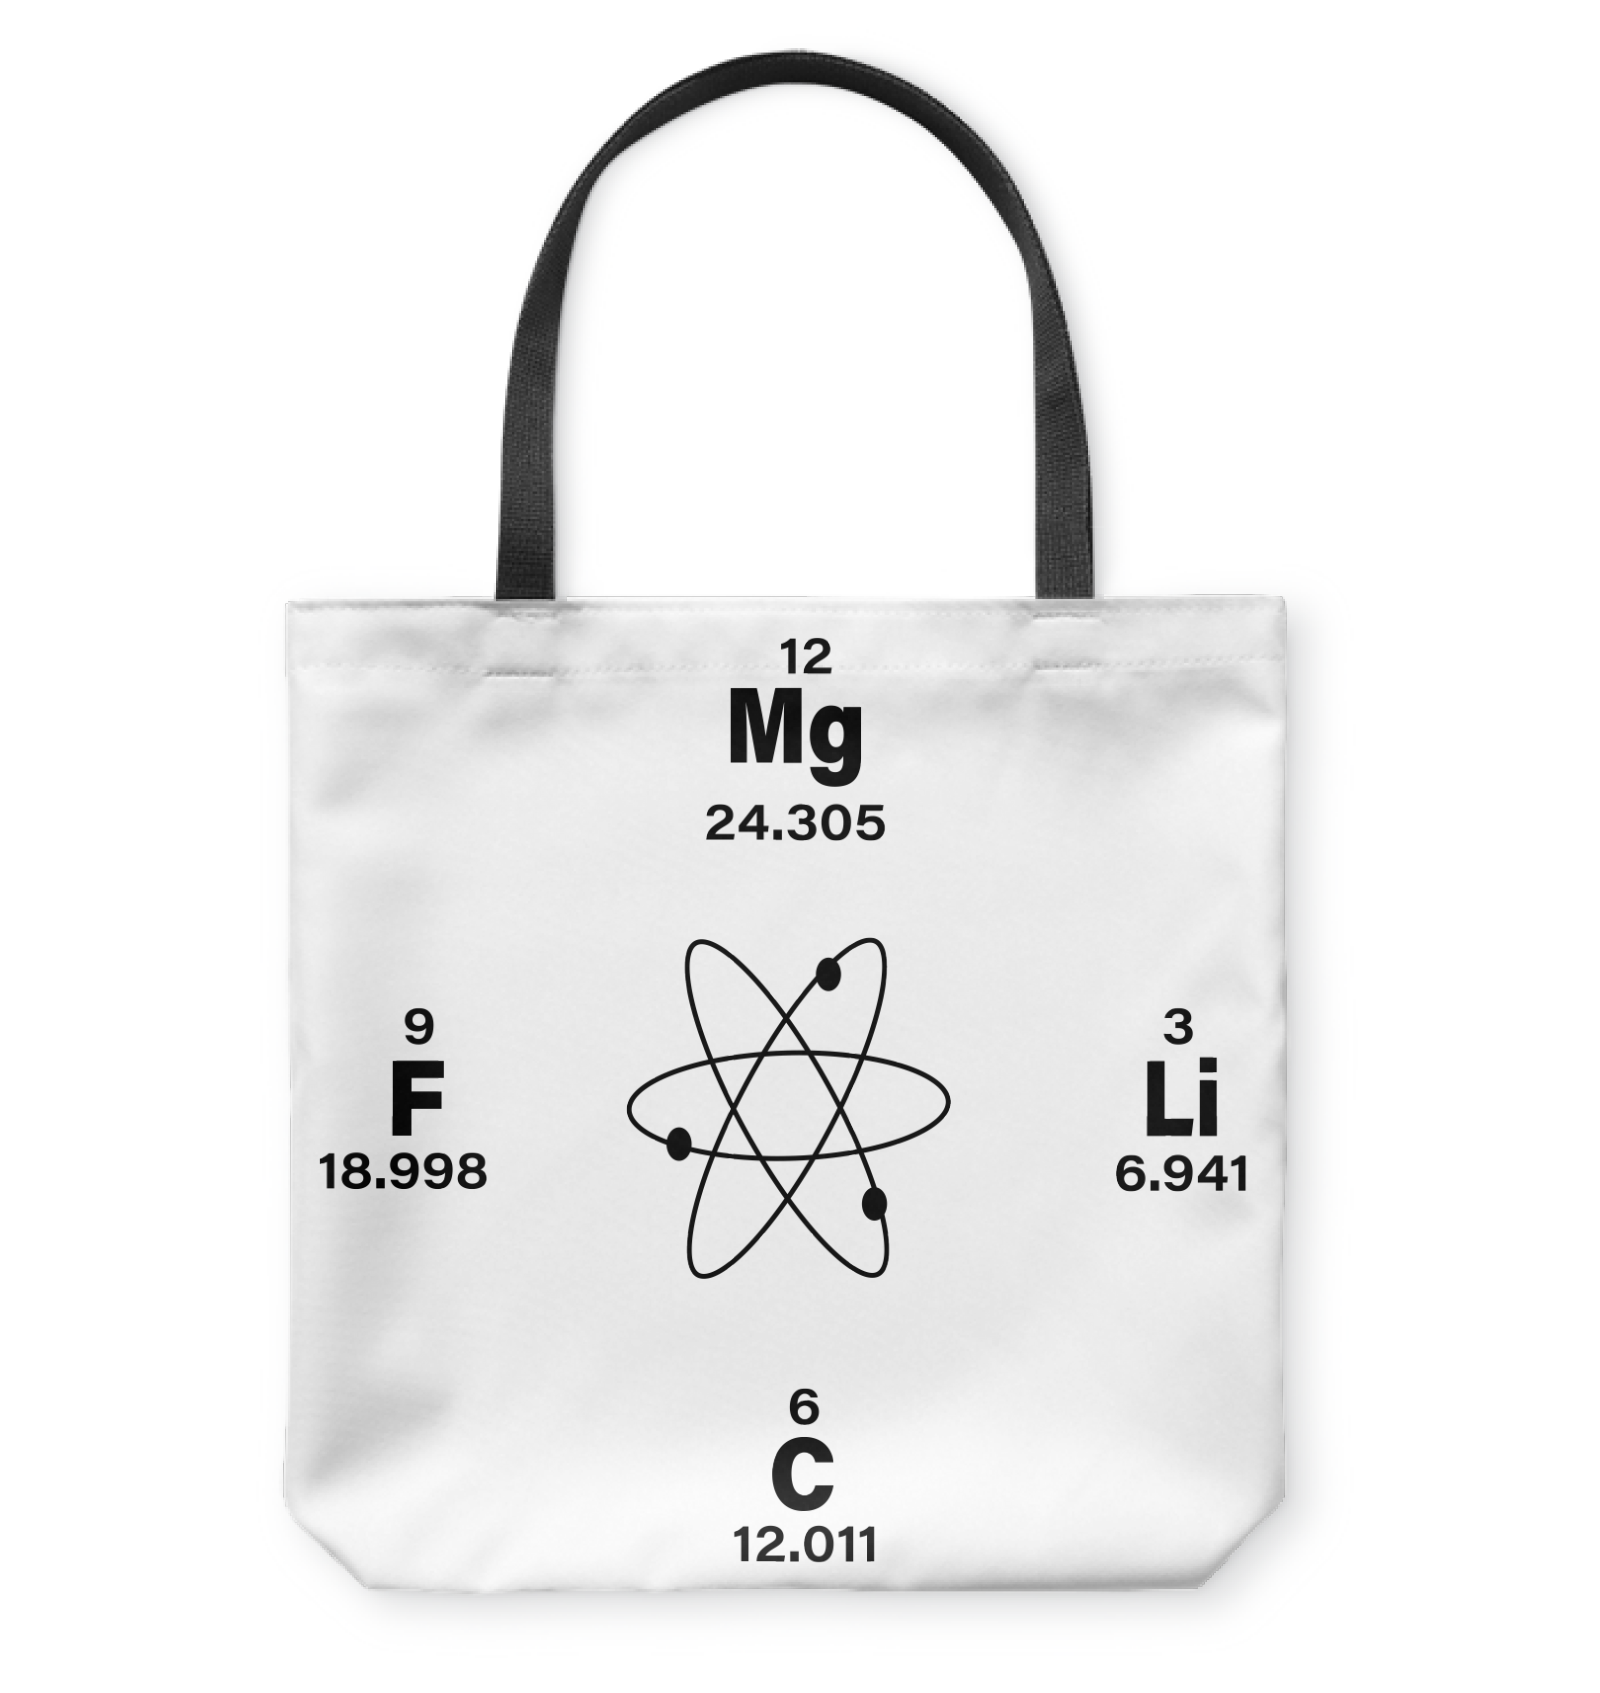 VIRA chemical elements tote bag for awesome teachers